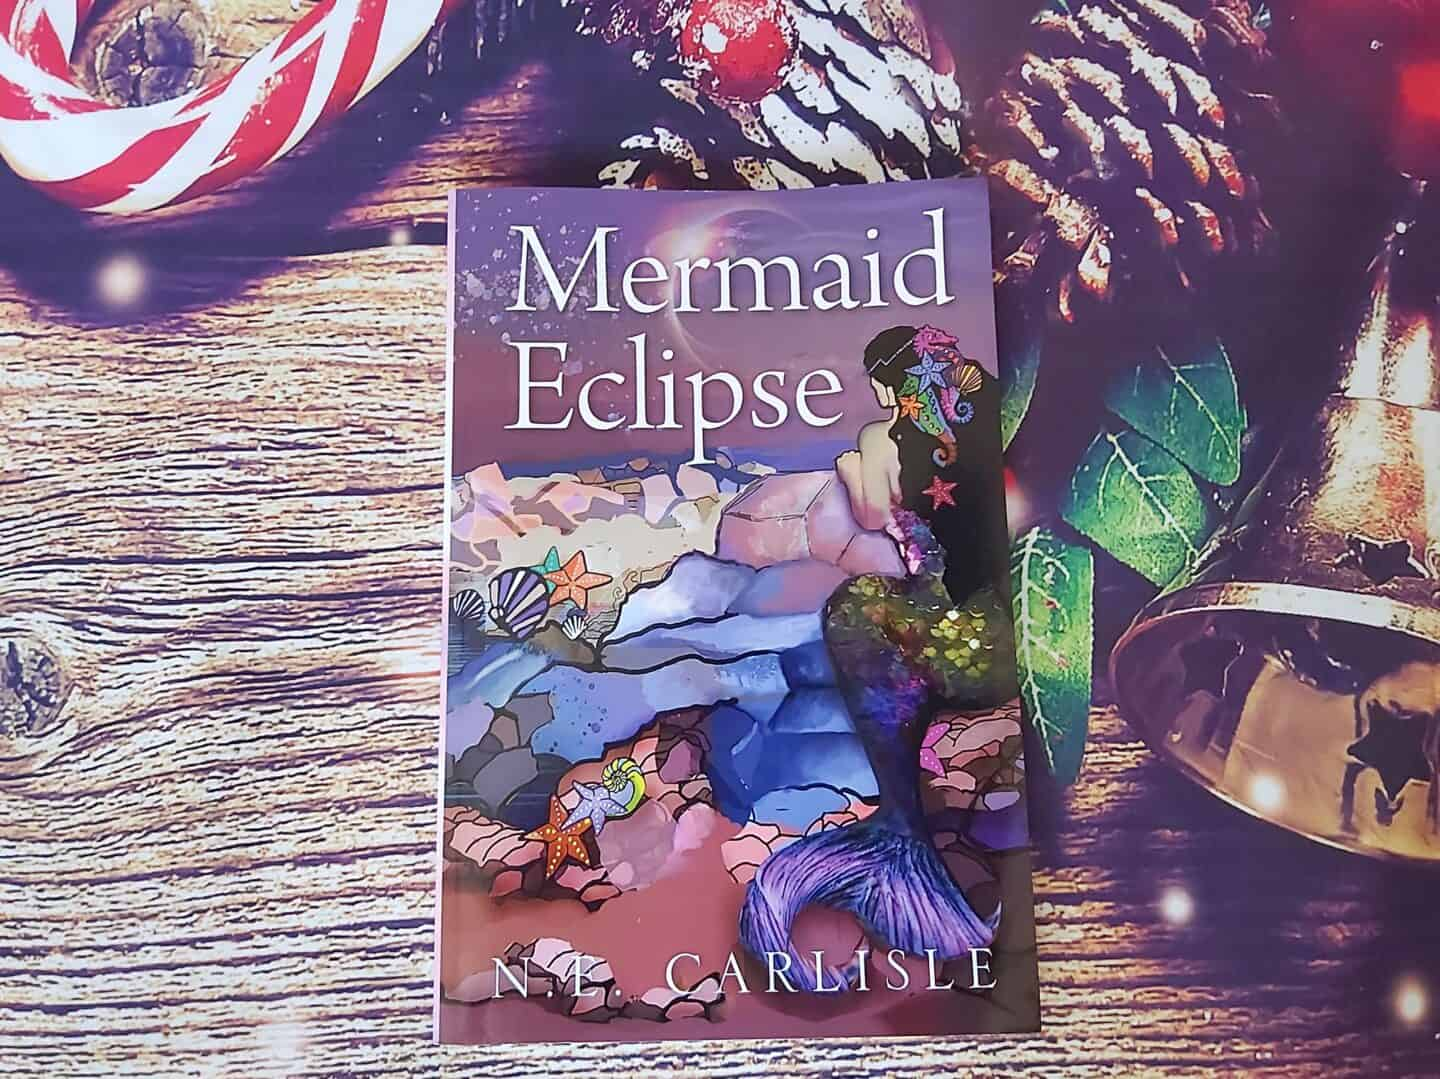 Mermaid Eclipse fiction for older children - something to read for four gift rule. Displayed against Christmas background